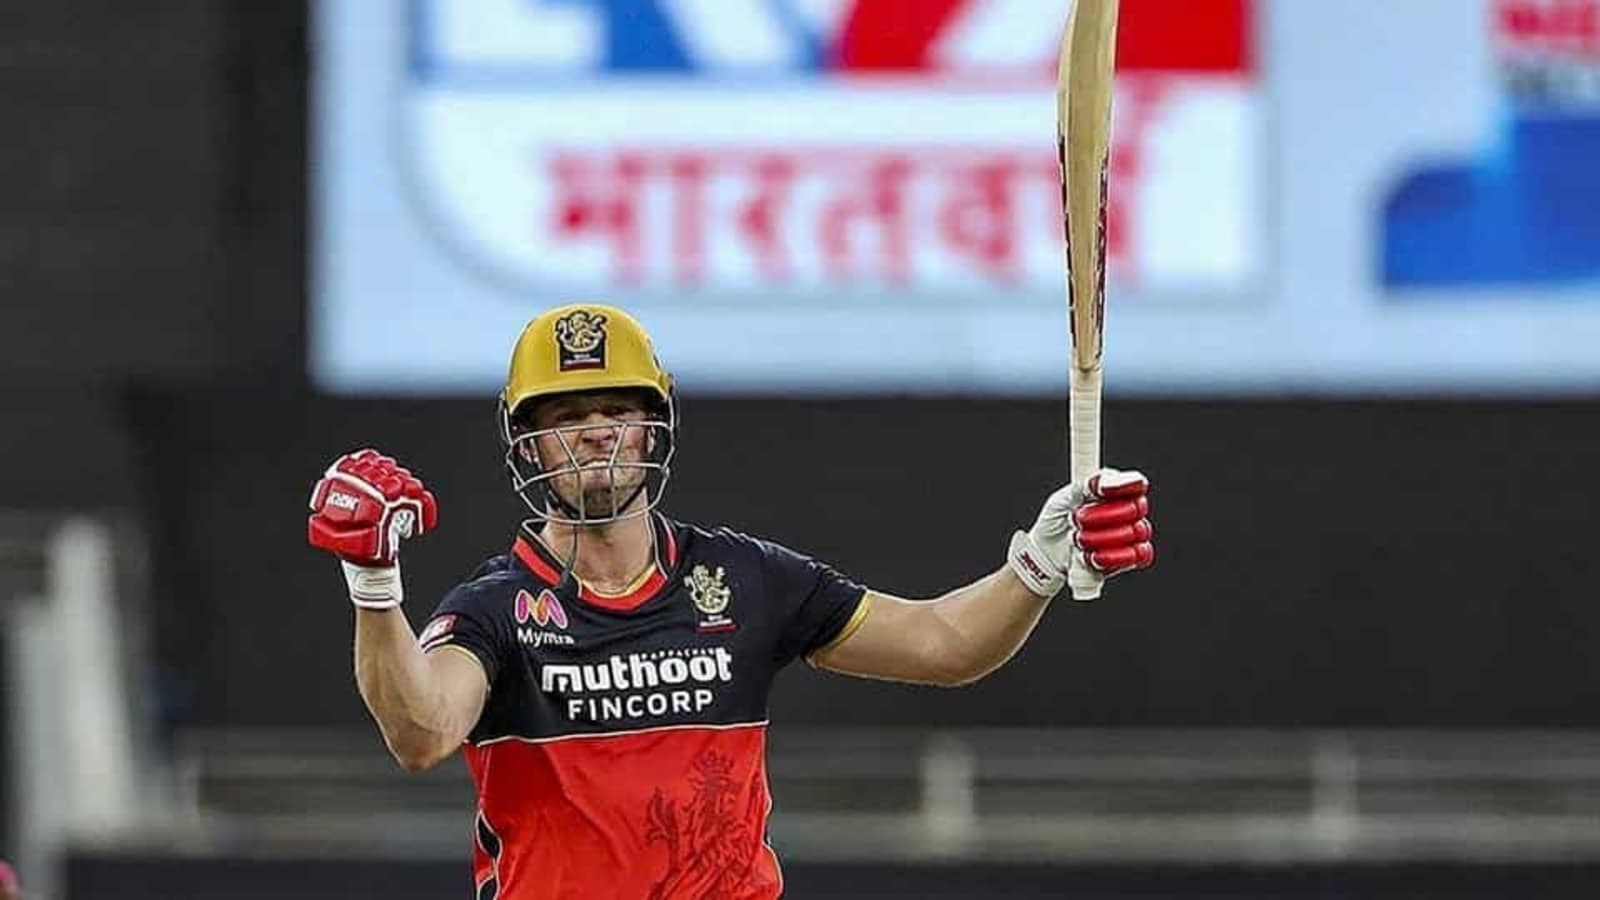 'AB de Villiers arrives on the 28th': Mike Hesson provides update on RCB's plans for IPL 2021 - Hindustan Times